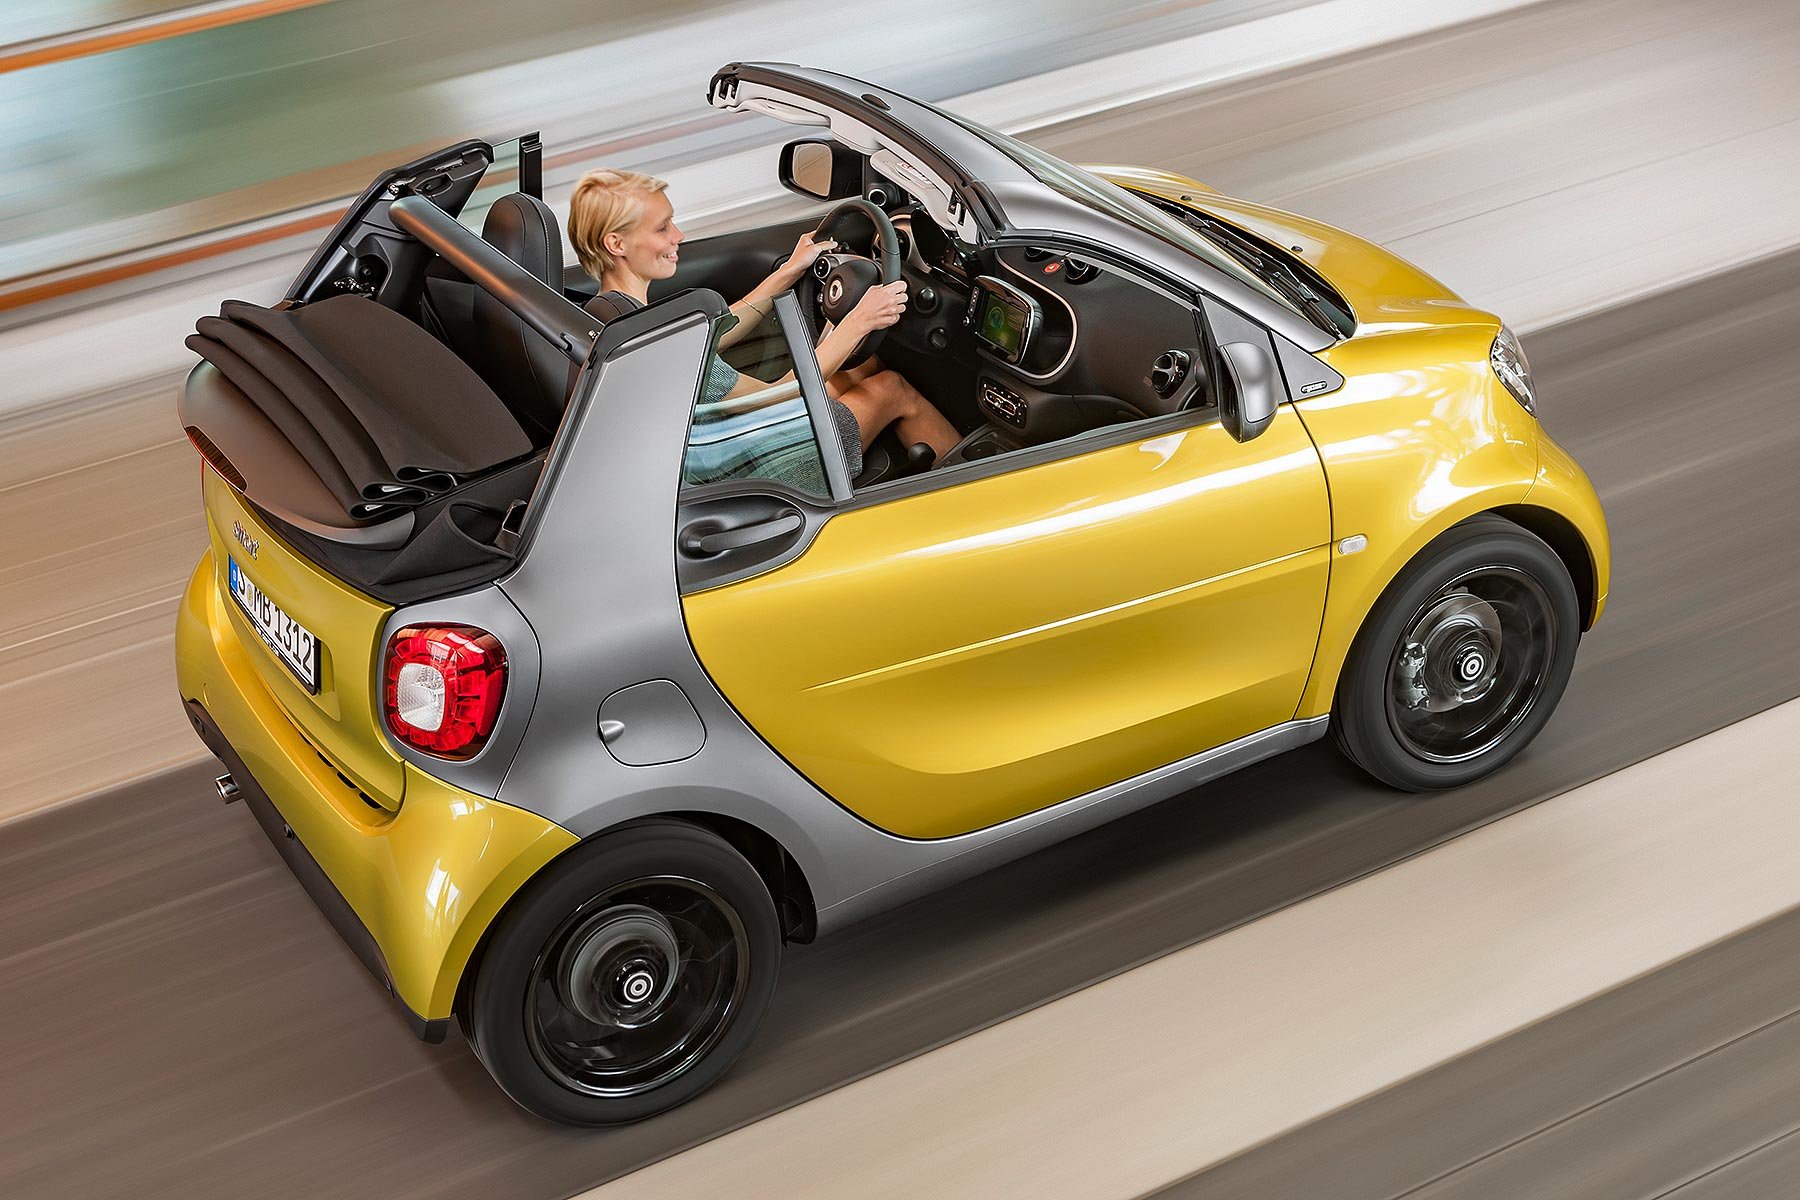 smart fortwo cabriolet to debut at 2015 frankfurt motor show motoring research. Black Bedroom Furniture Sets. Home Design Ideas